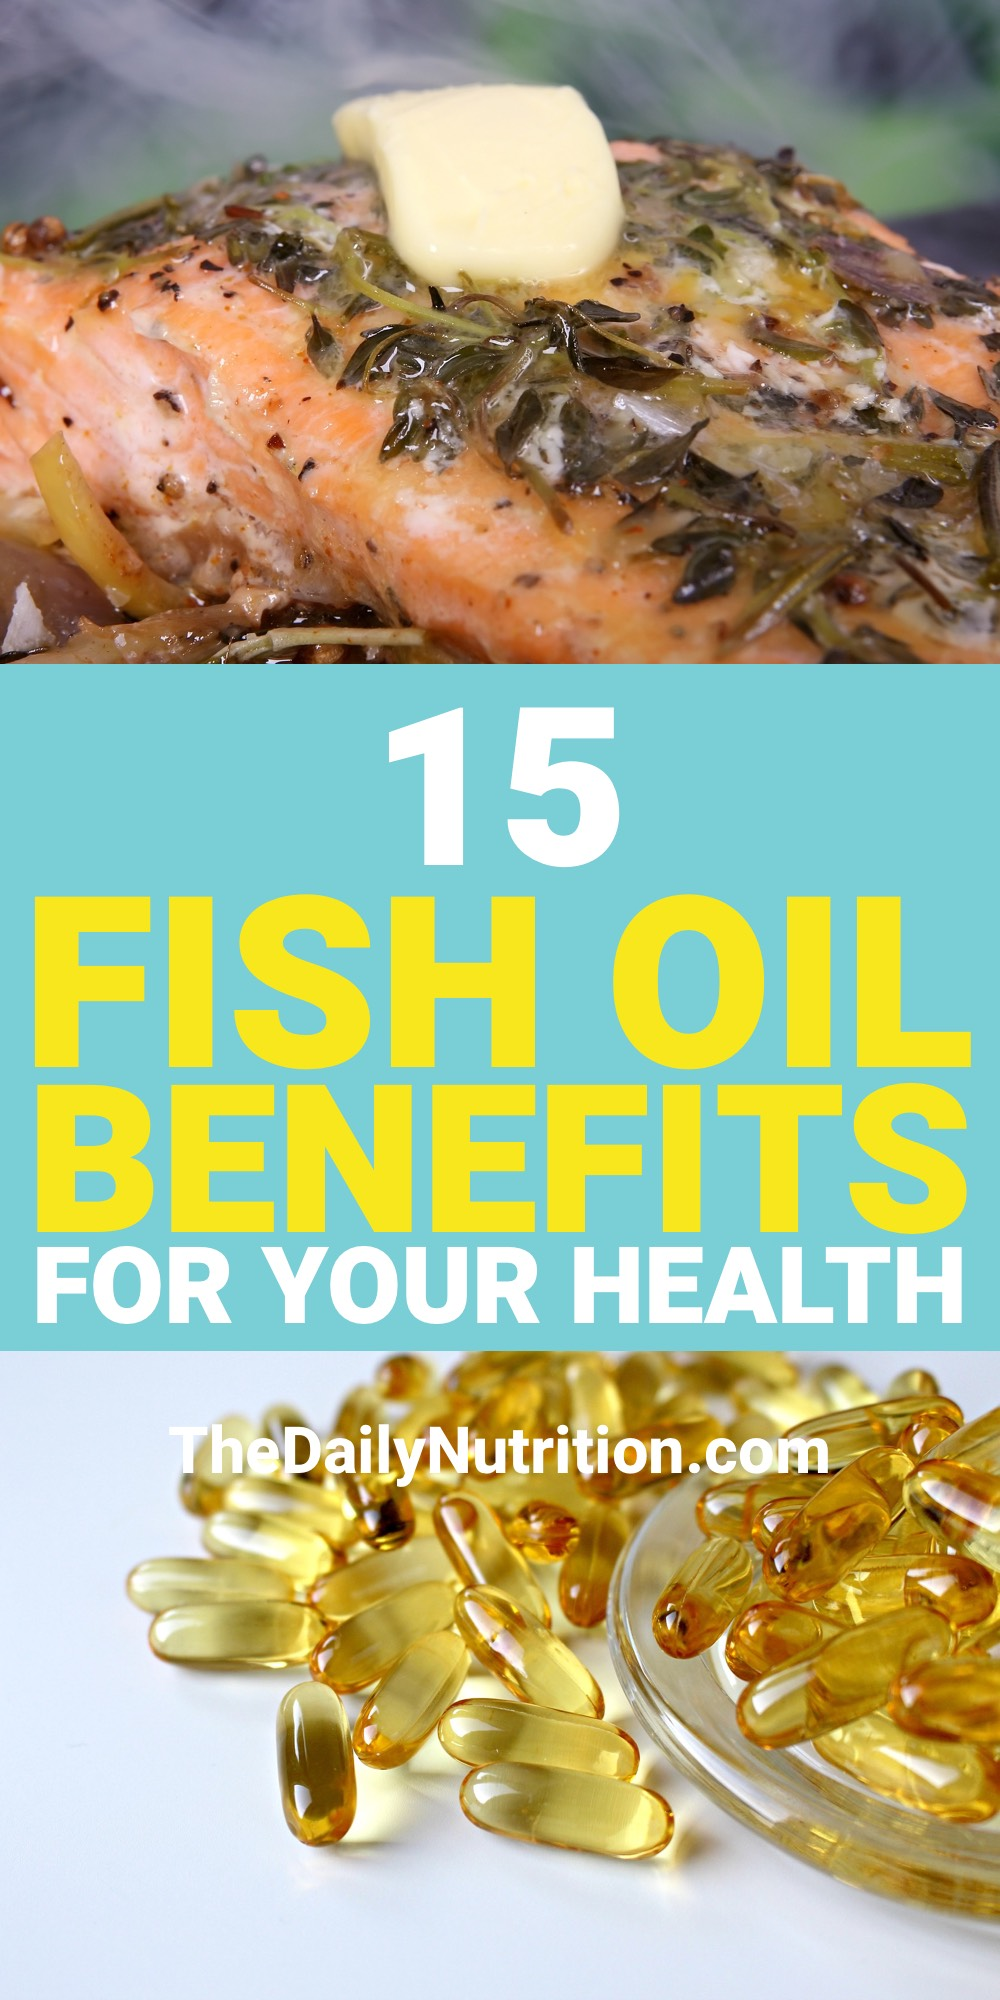 Fish oil pills and other fish oil supplements are going to improve your health. Here are 15 fish oil benefits that you need.